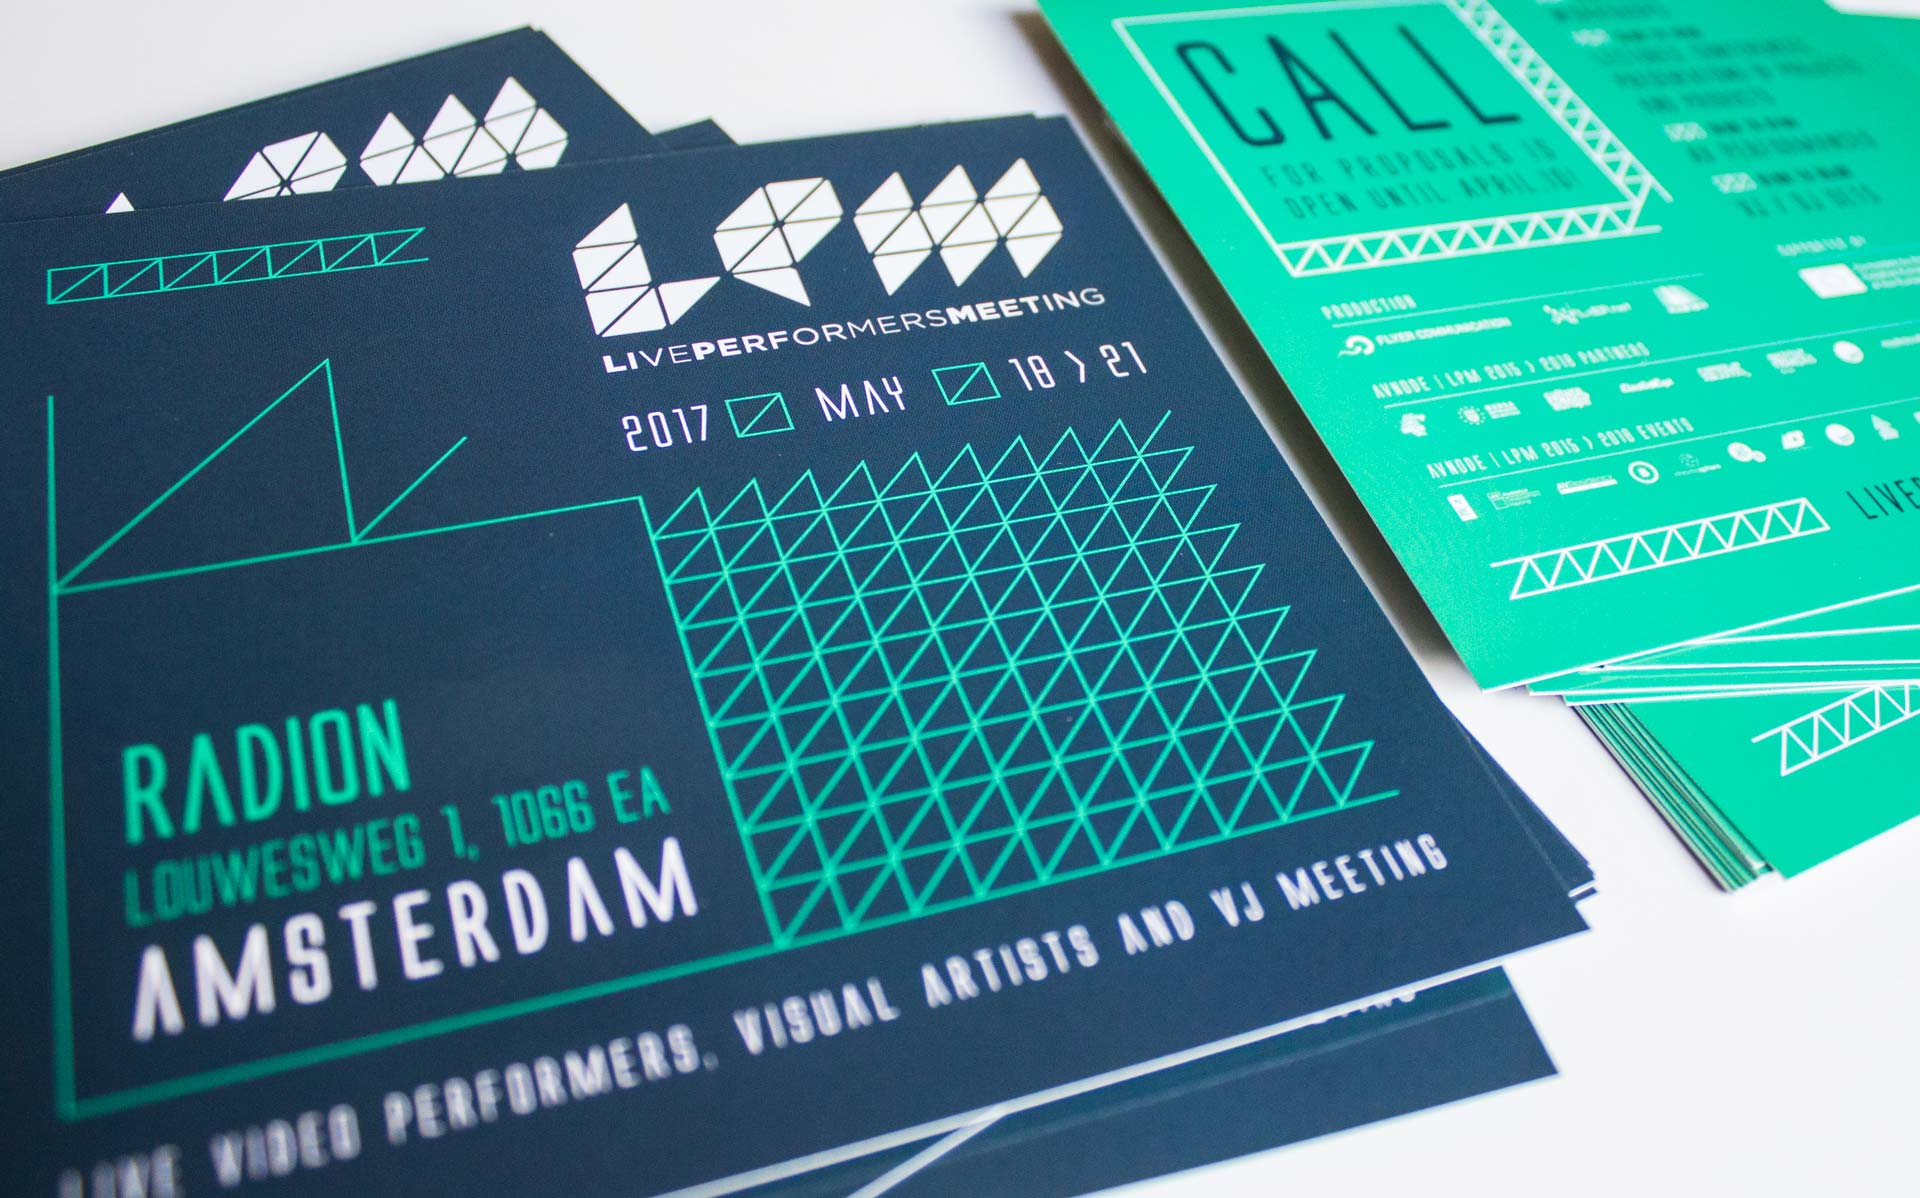 Live Performers Meeting 2017 - flyer